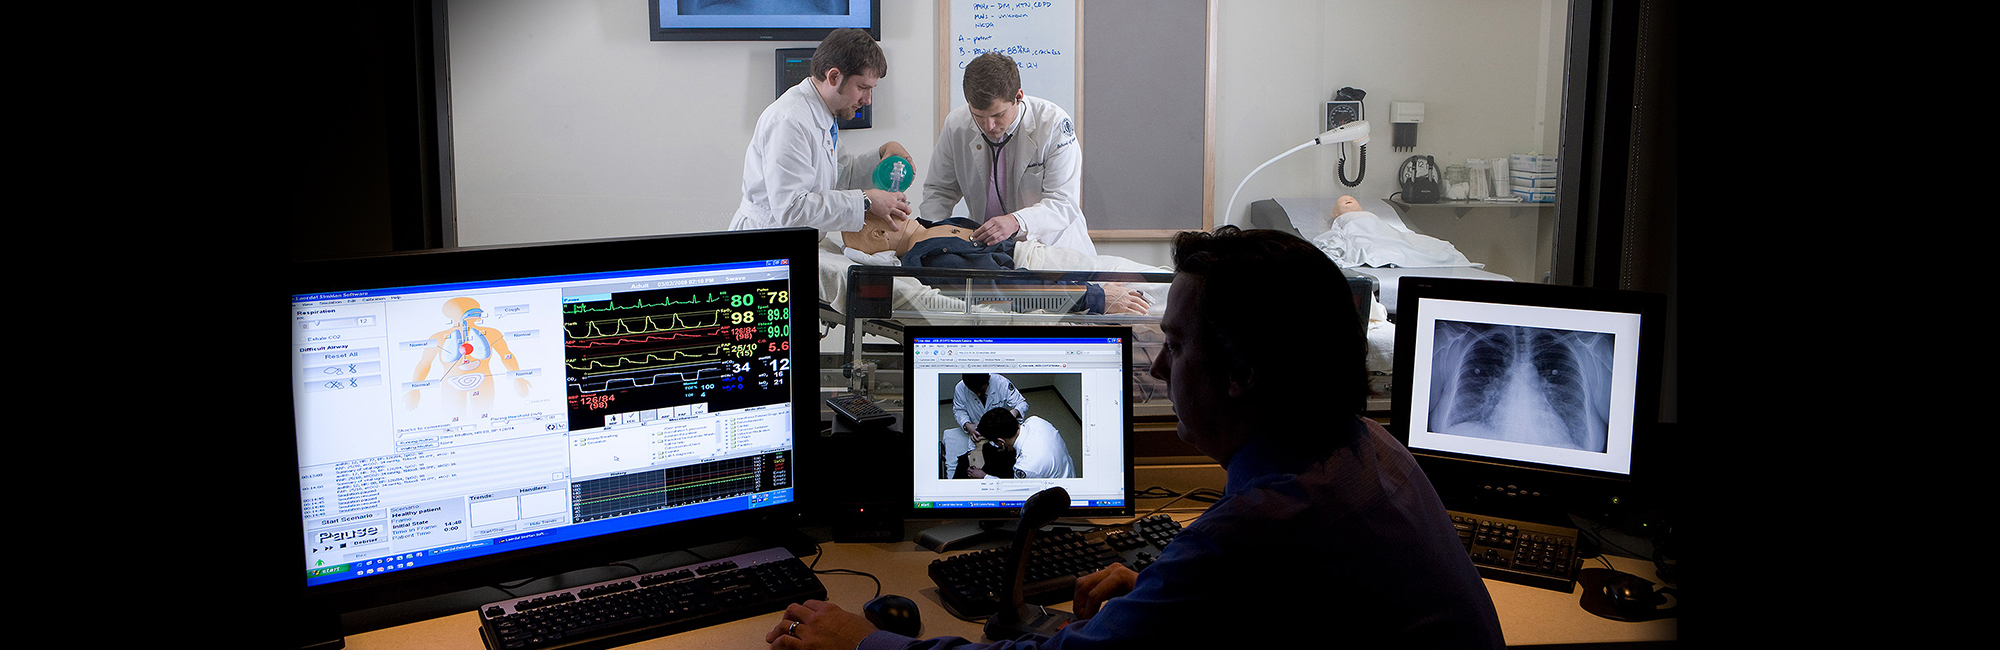 Dr. Thomas Nowicki, director of medical simulation at UConn observes Benjamin Silverberg, a fourth year medical student and Austin Schirmer, a second year medical student